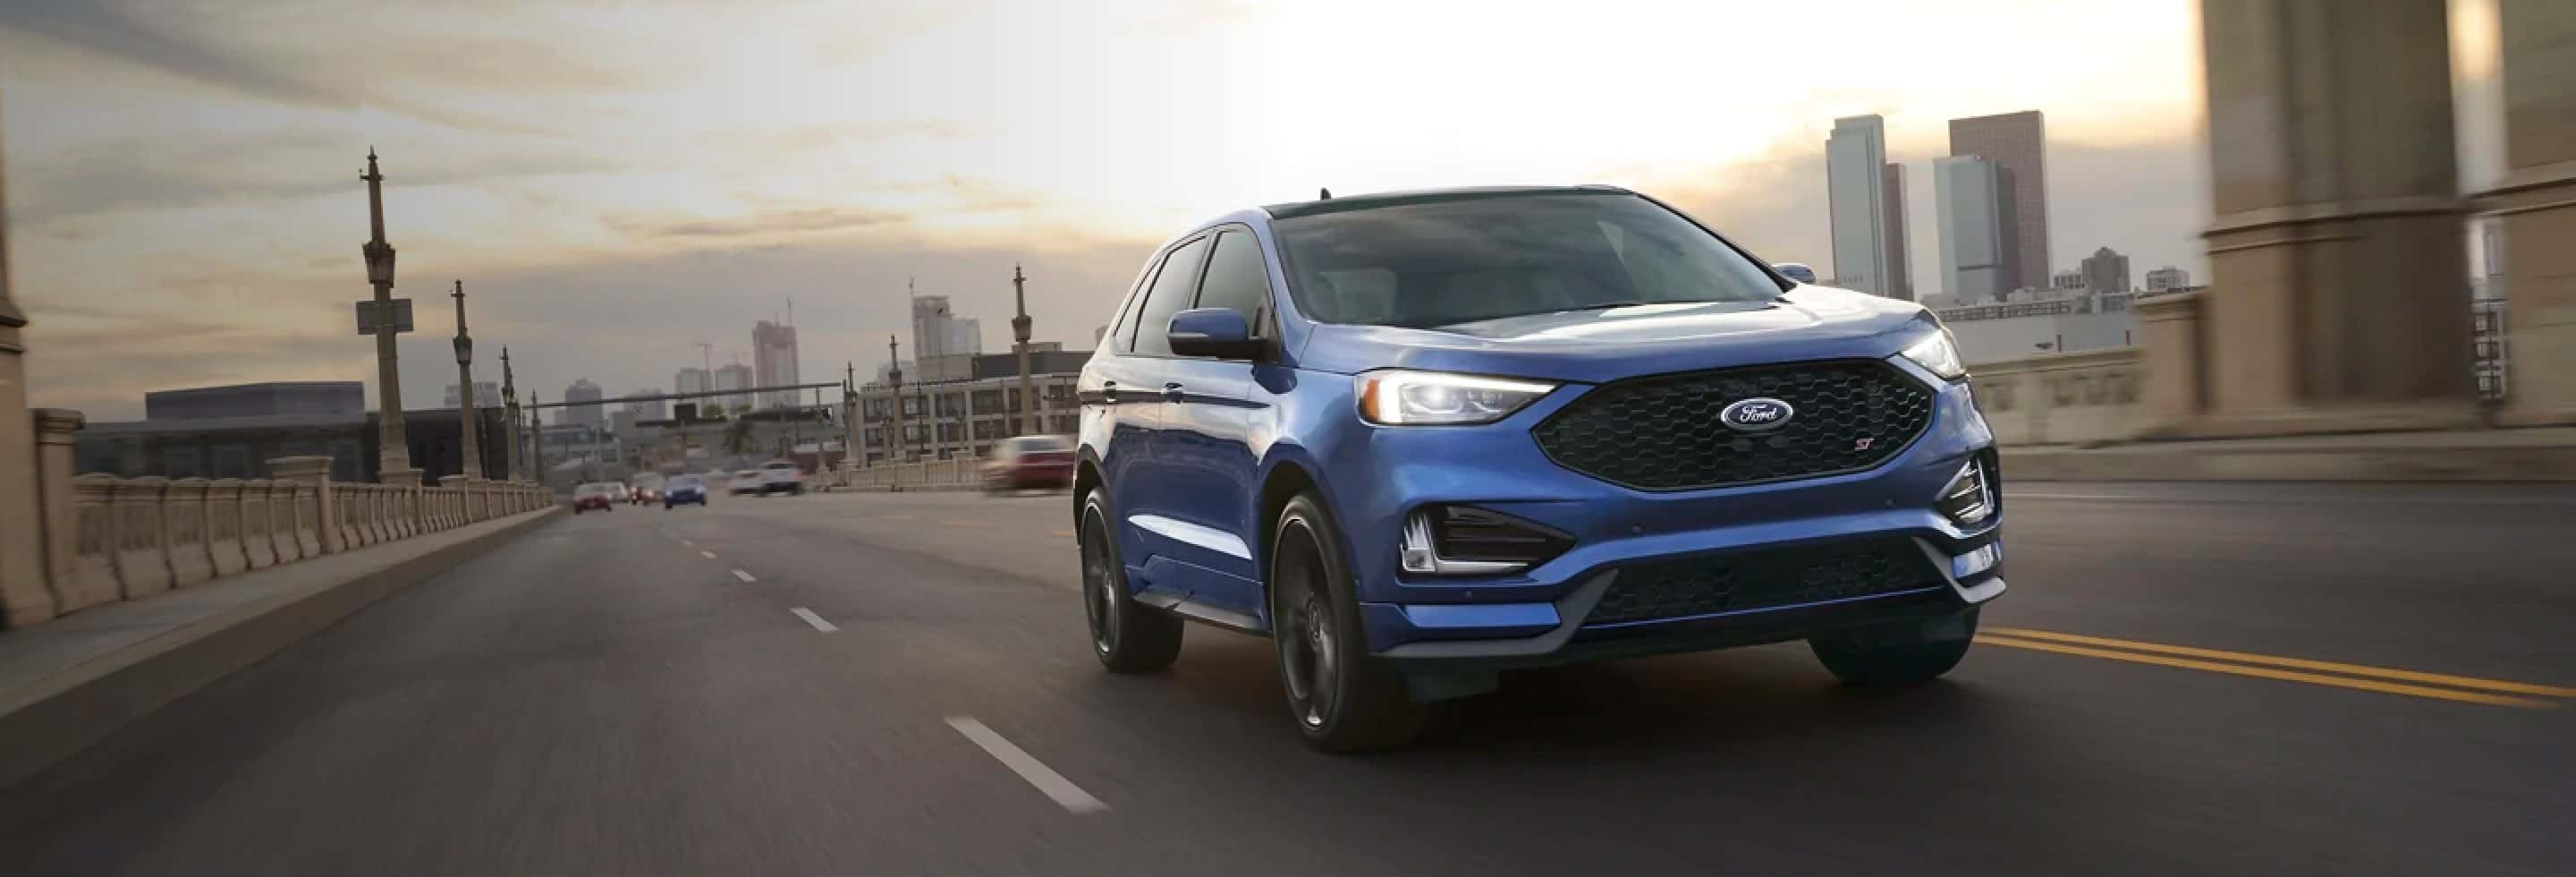 A Ford Edge driving on a street.